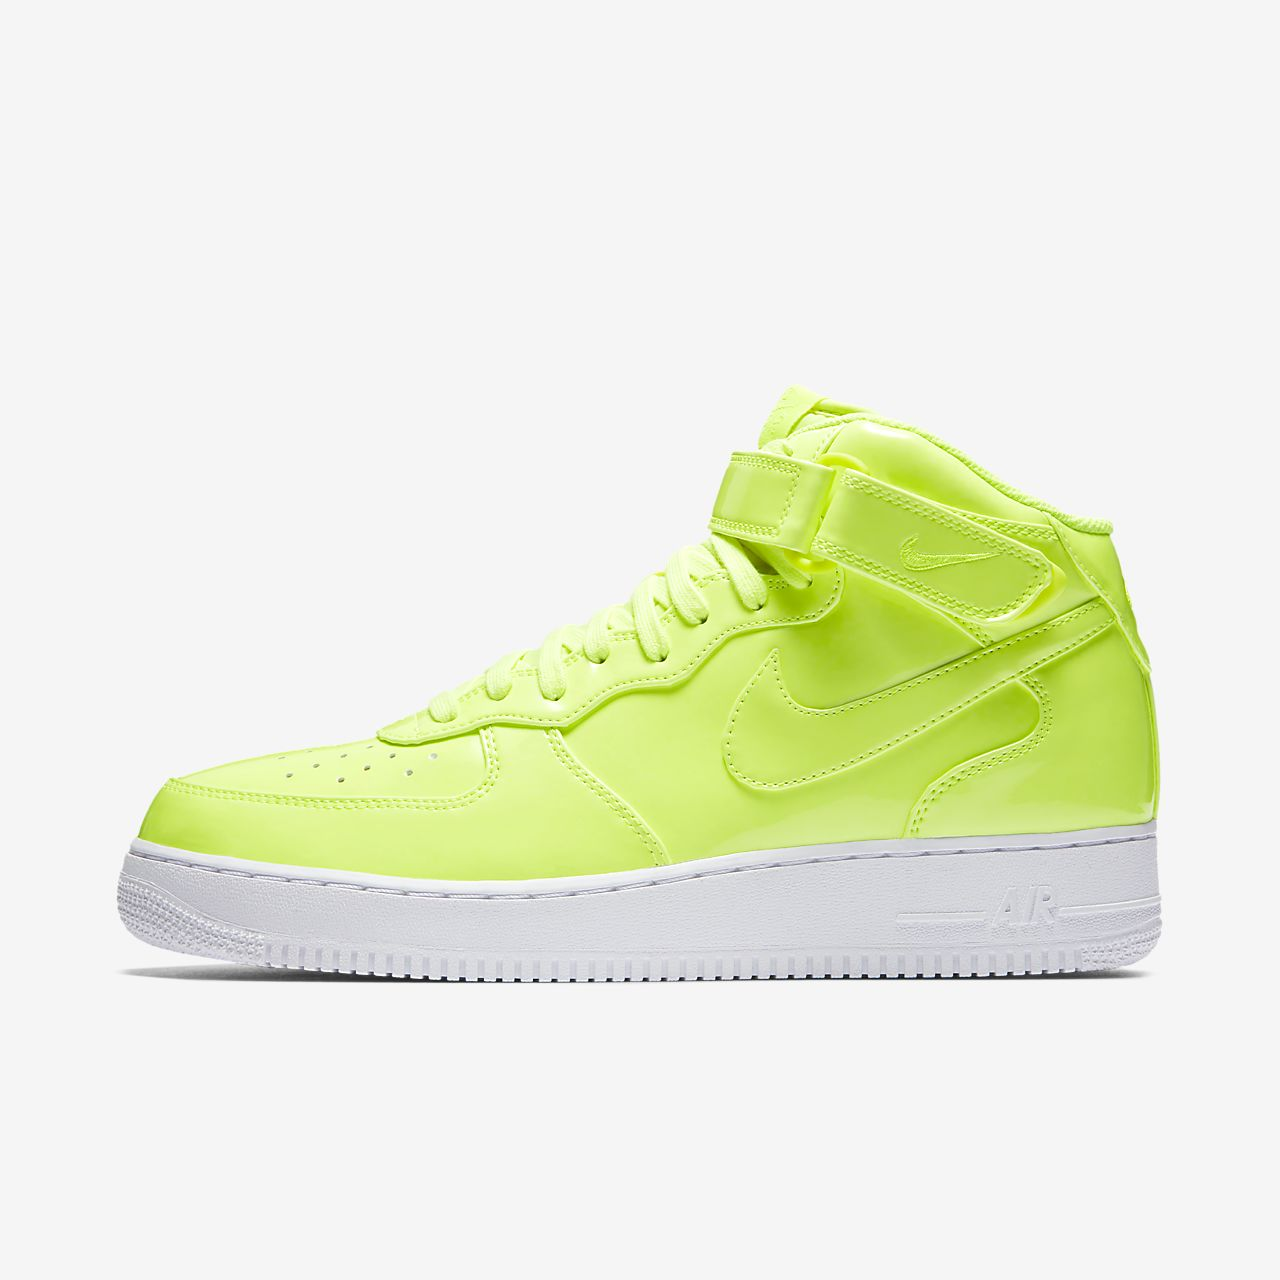 Nike Air Force 1 Mid '07 LV8 UV Men's Shoe